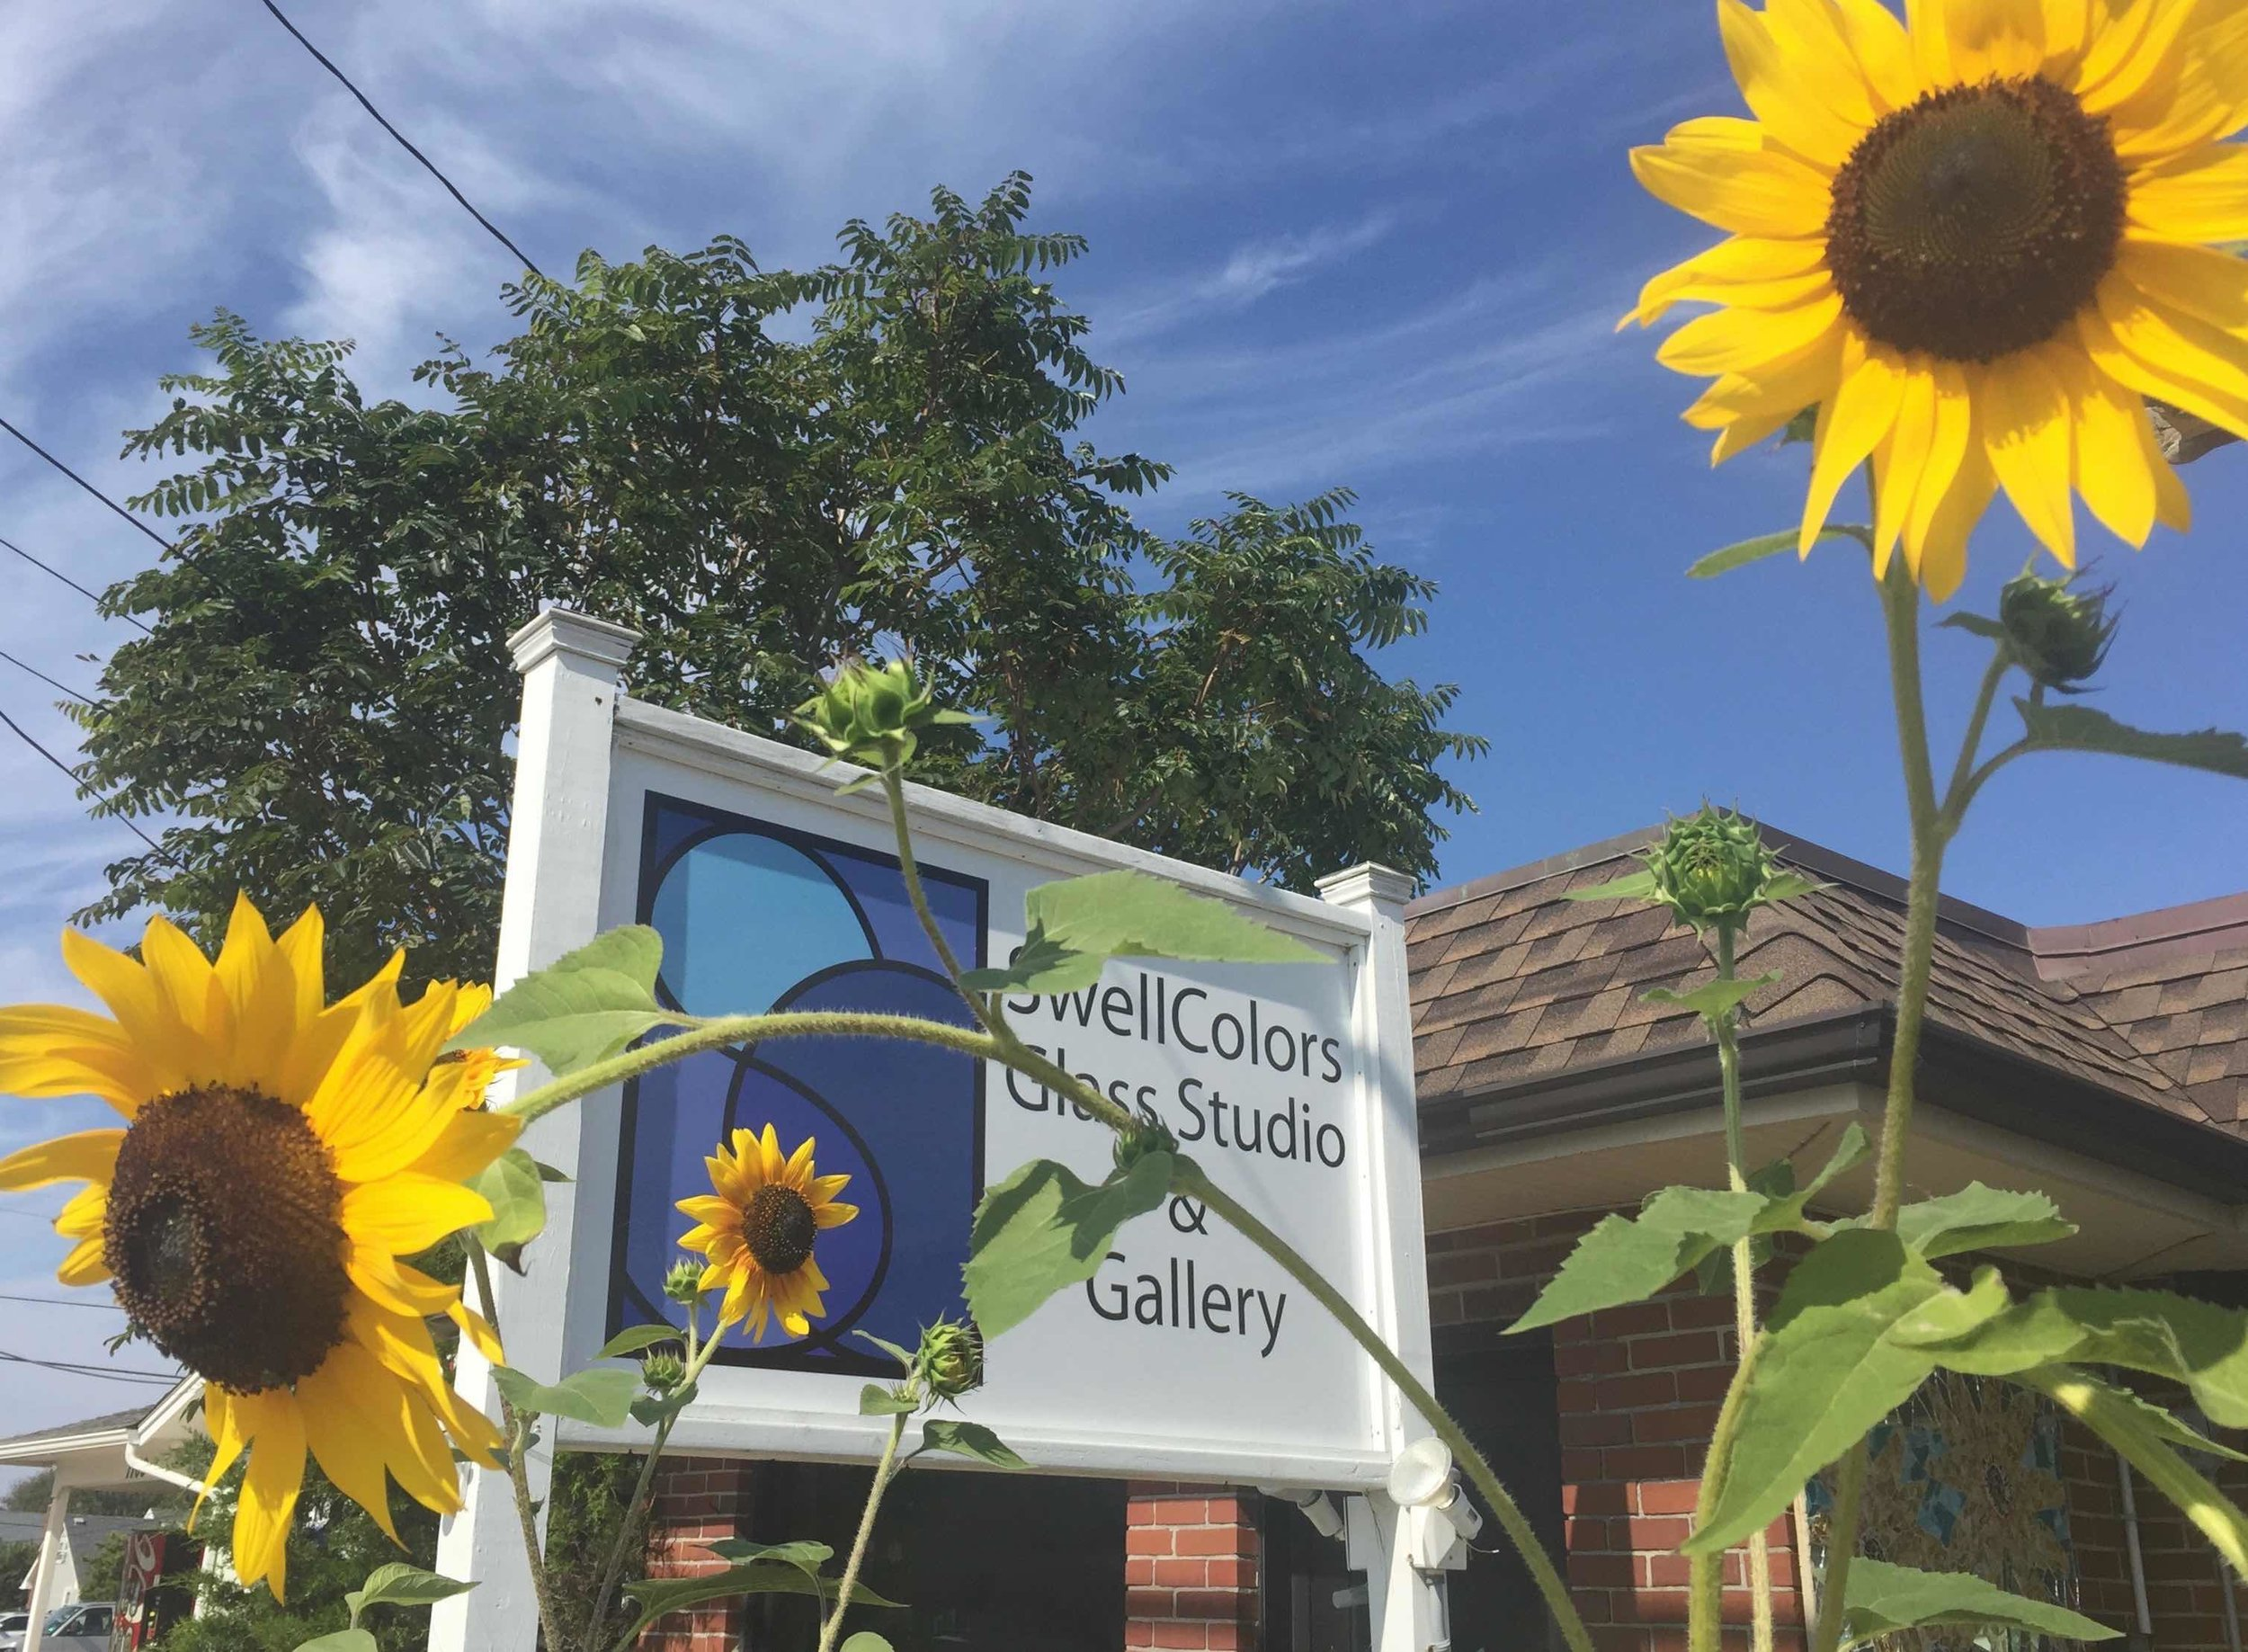 It's sunflower season at SwellColors! Pick up a free heirloom seedling at SwellColors in Surf City this Memorial Day Weekend! :-)